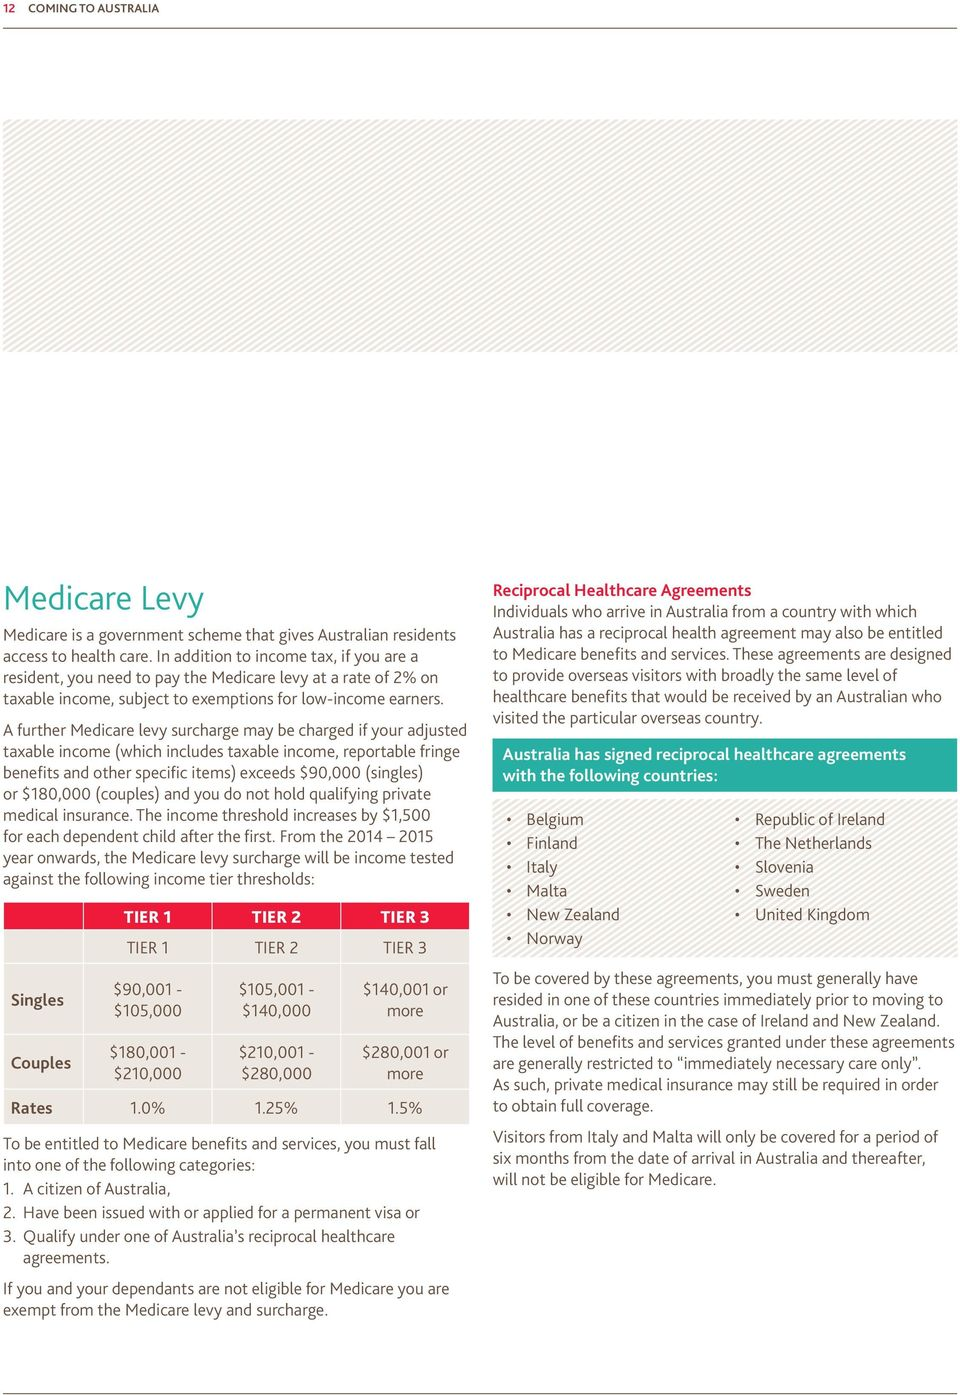 A further Medicare levy surcharge may be charged if your adjusted taxable income (which includes taxable income, reportable fringe benefits and other specific items) exceeds $90,000 (singles) or